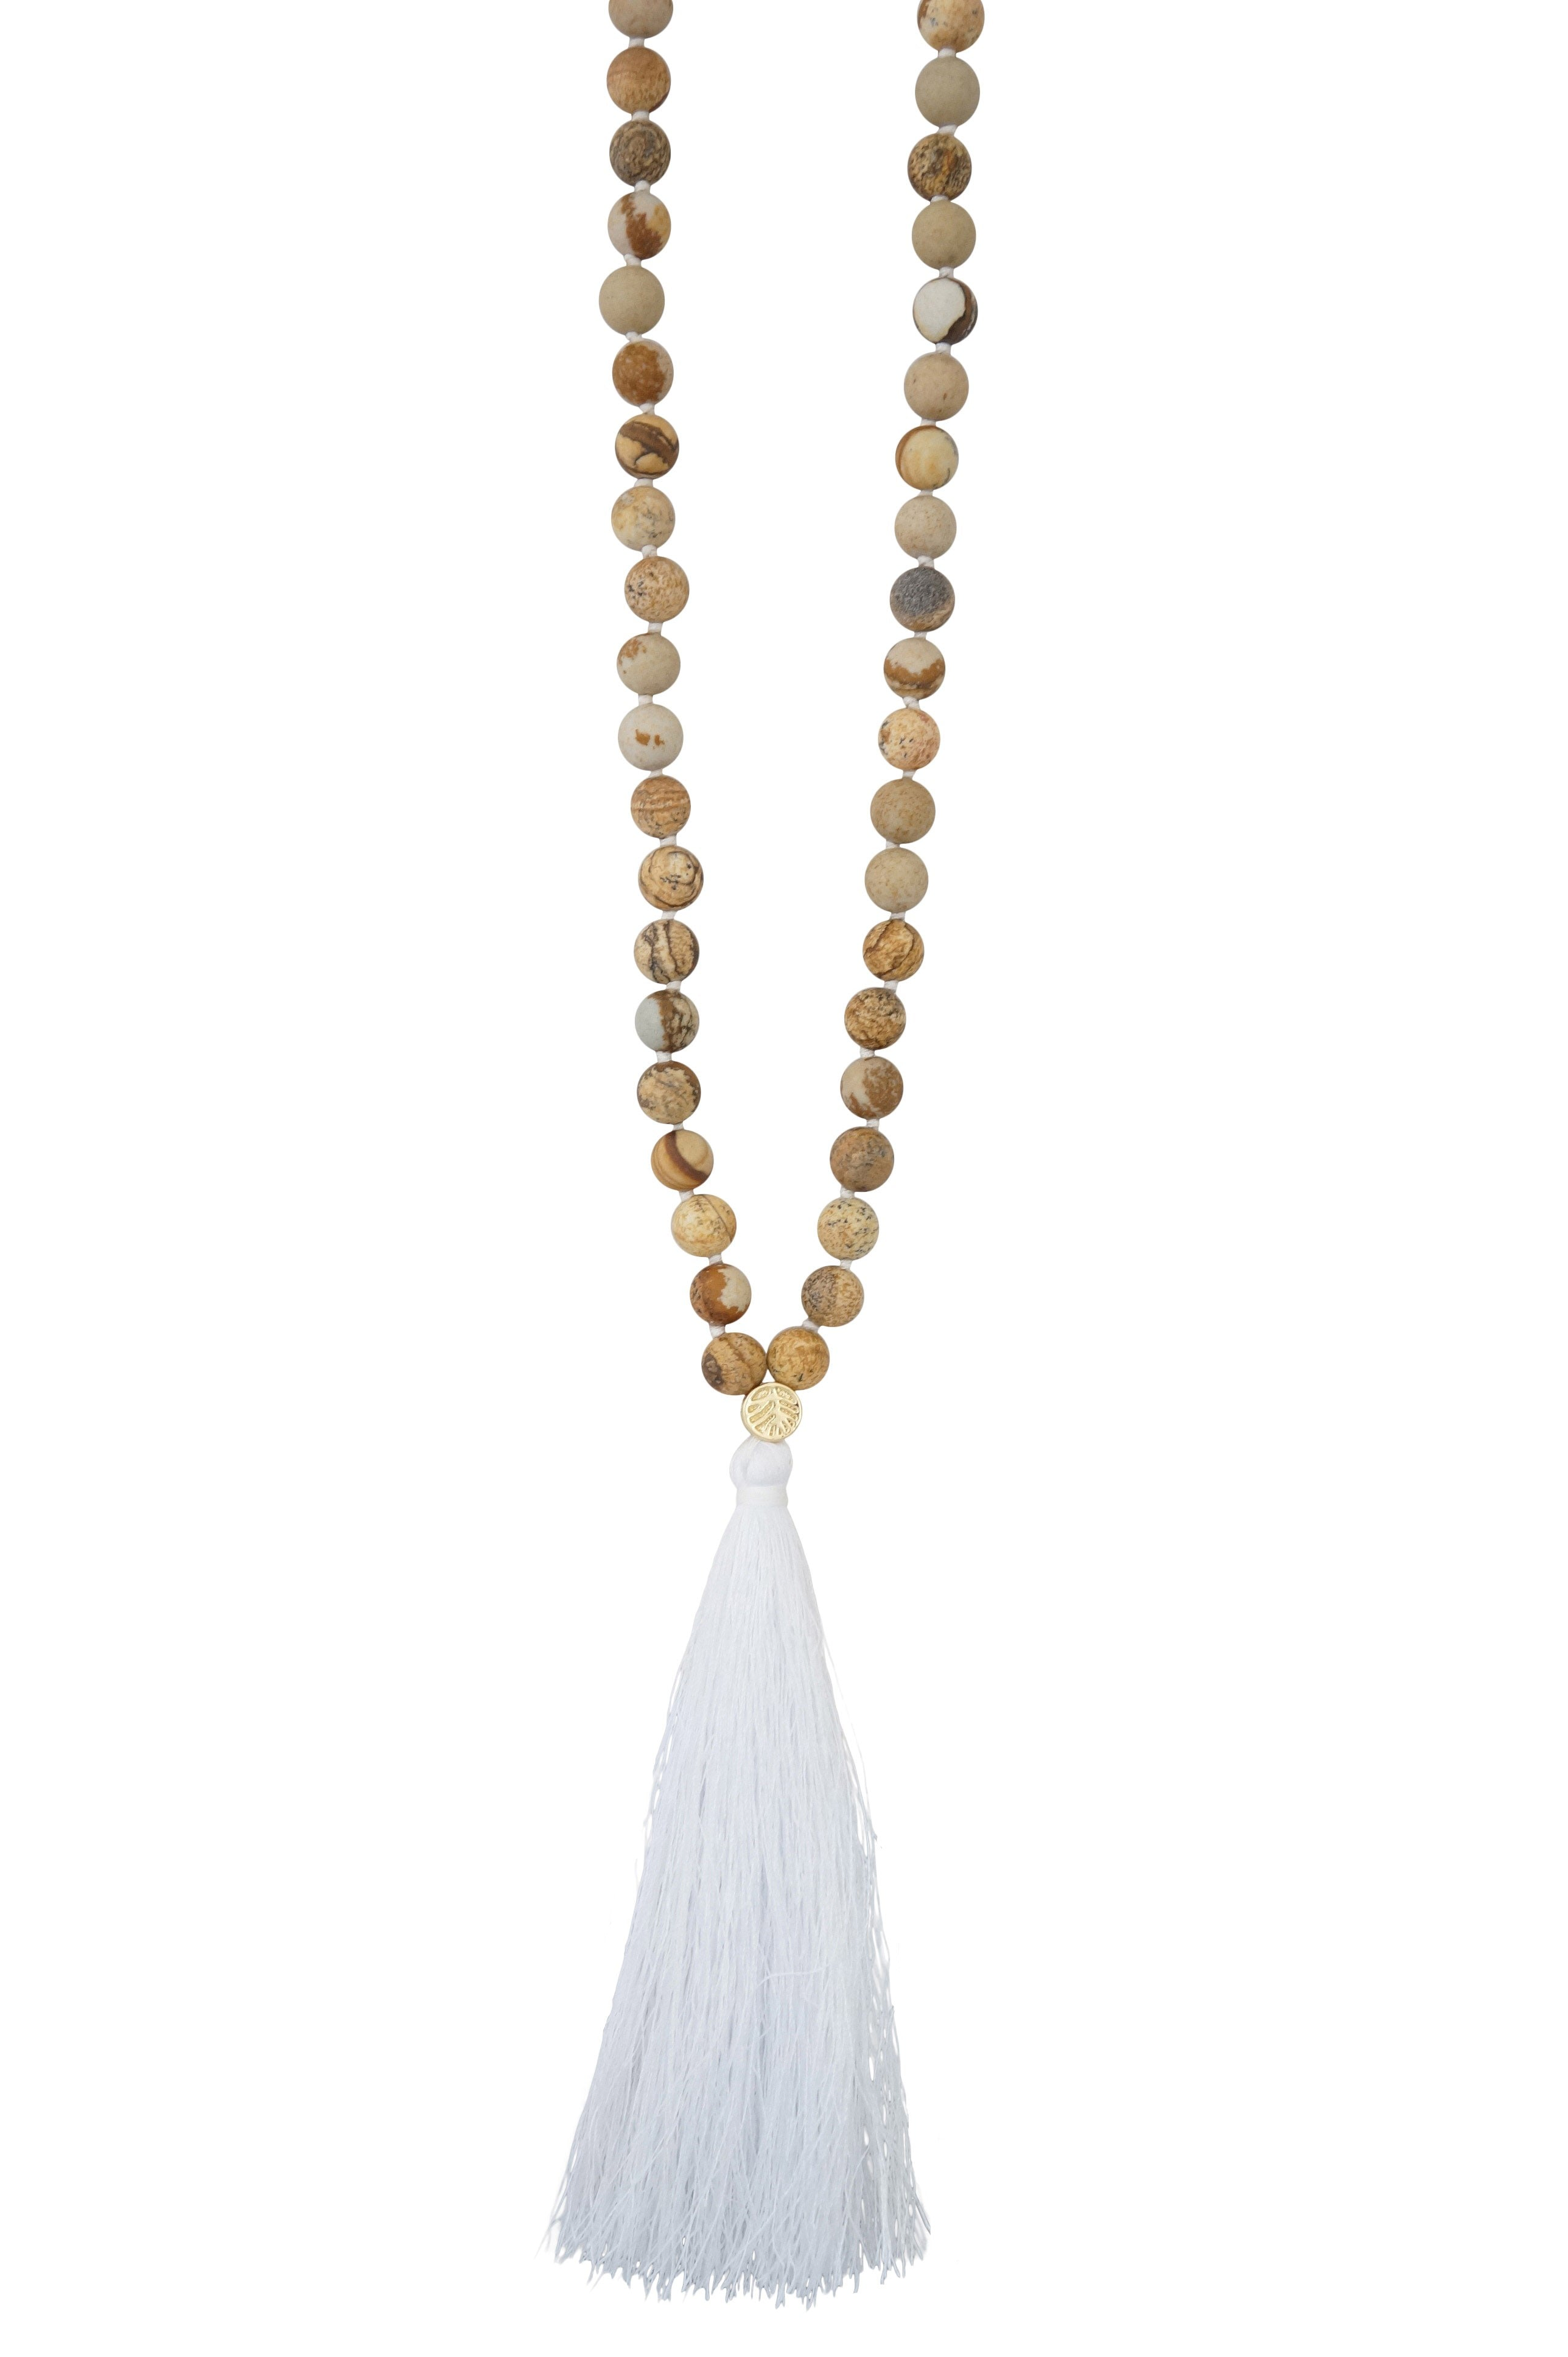 Unity Mala - Carolyn Hearn Designs